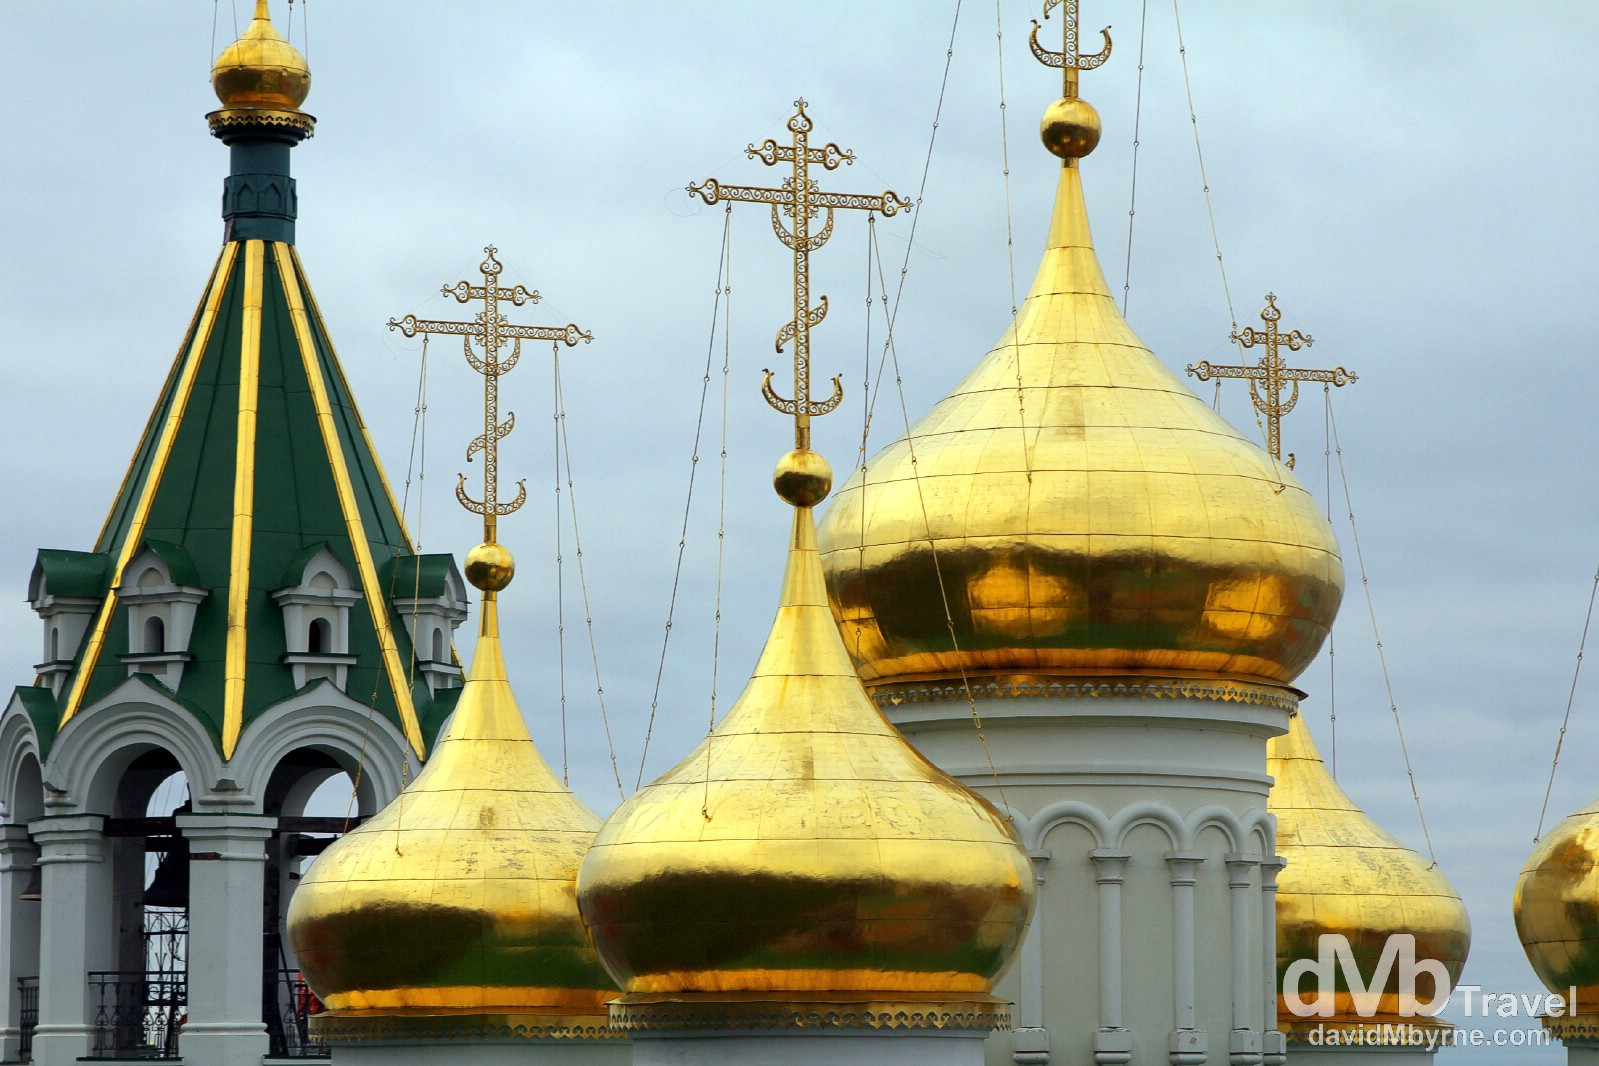 Gold Onion Domes. Nizhny Novgorod, Russia. November 14th 2012.